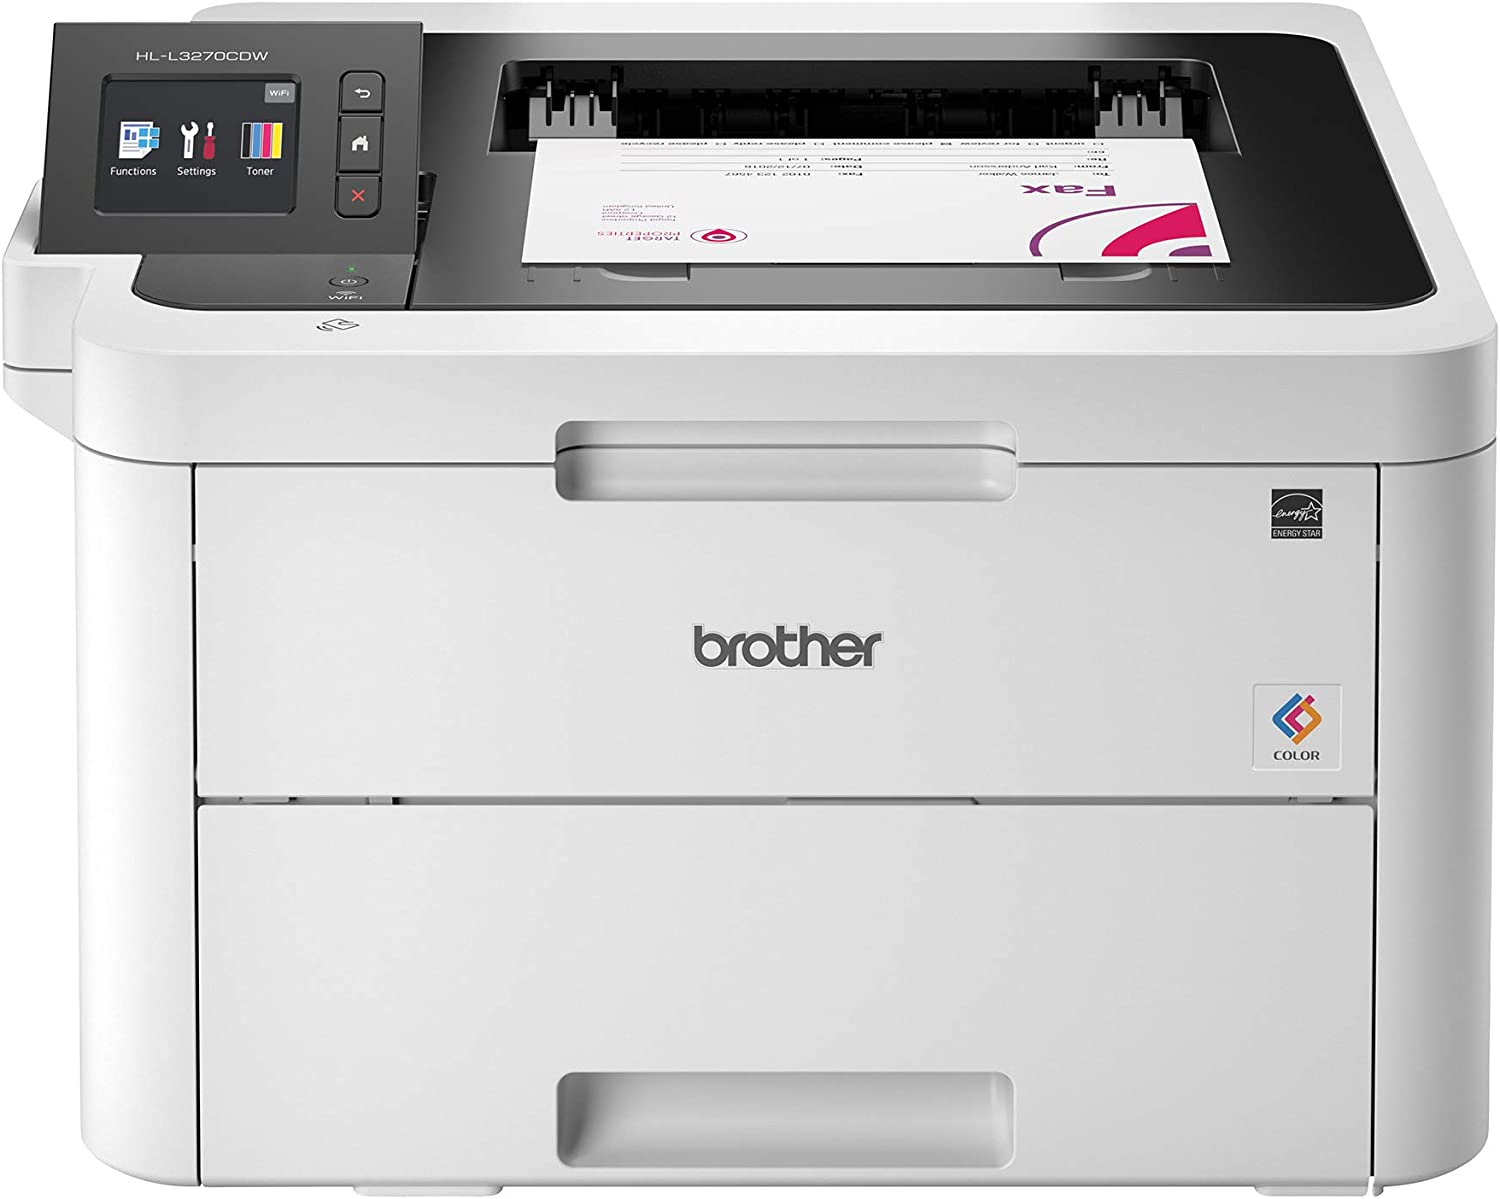 Brother HL-L3270CDW Compact Wireless Digital Color Printer with NFC, Mobile Device and Duplex Printing - Ideal for Home and Small Office Use, Amazon Dash Replenishment Ready